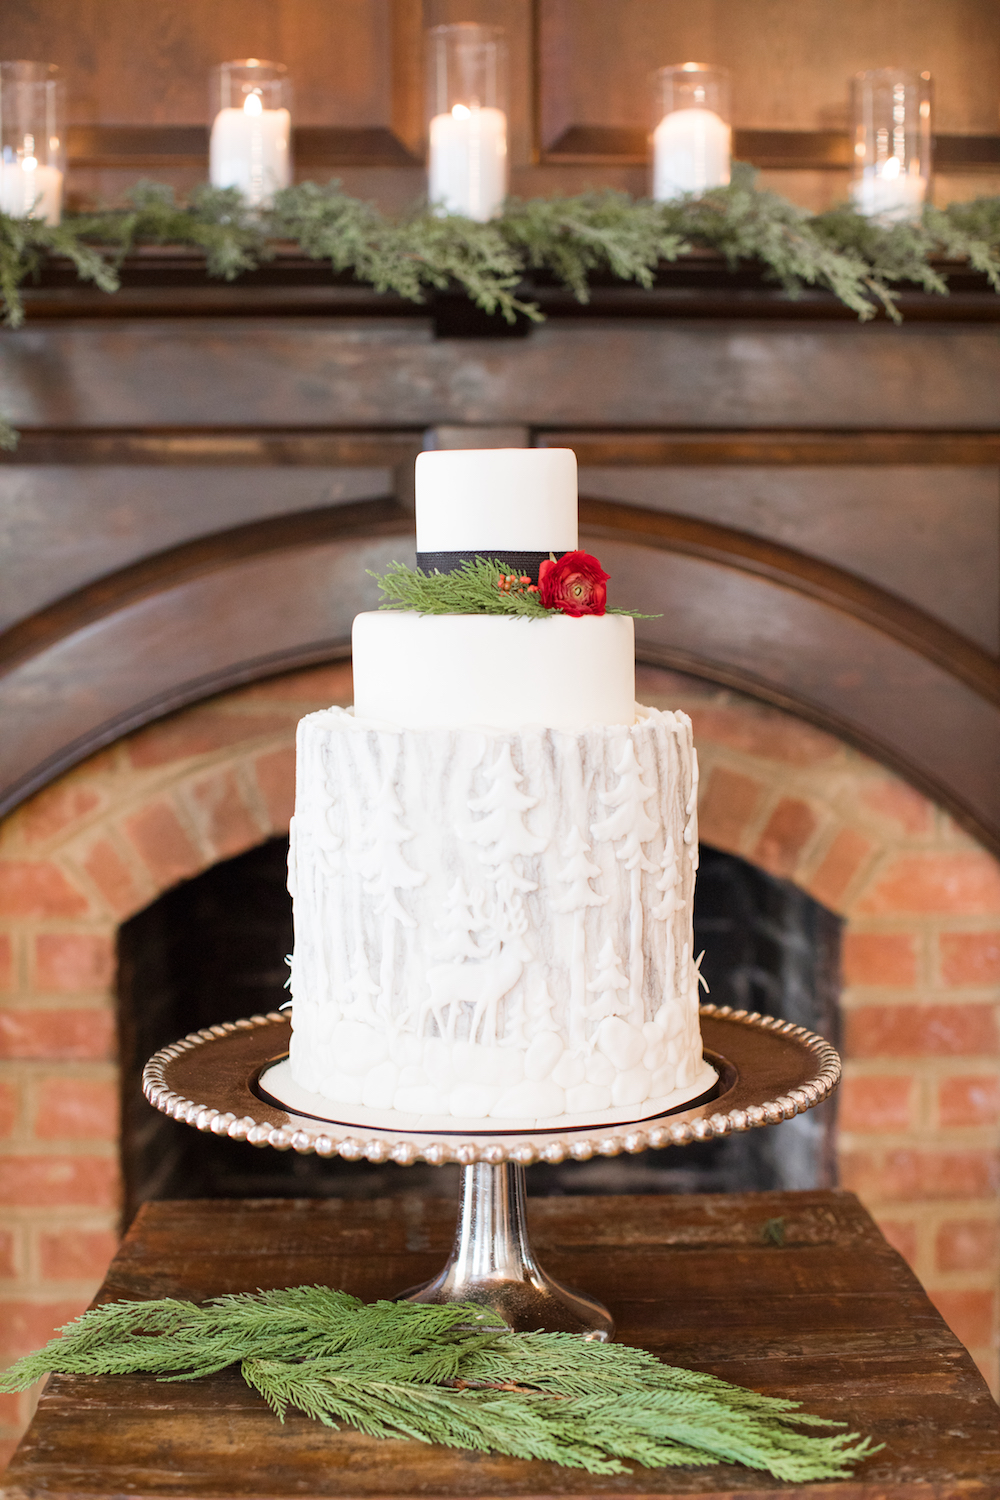 Winter Wonderland Wedding Inspo Complete With A Hot Cocoa Bar!